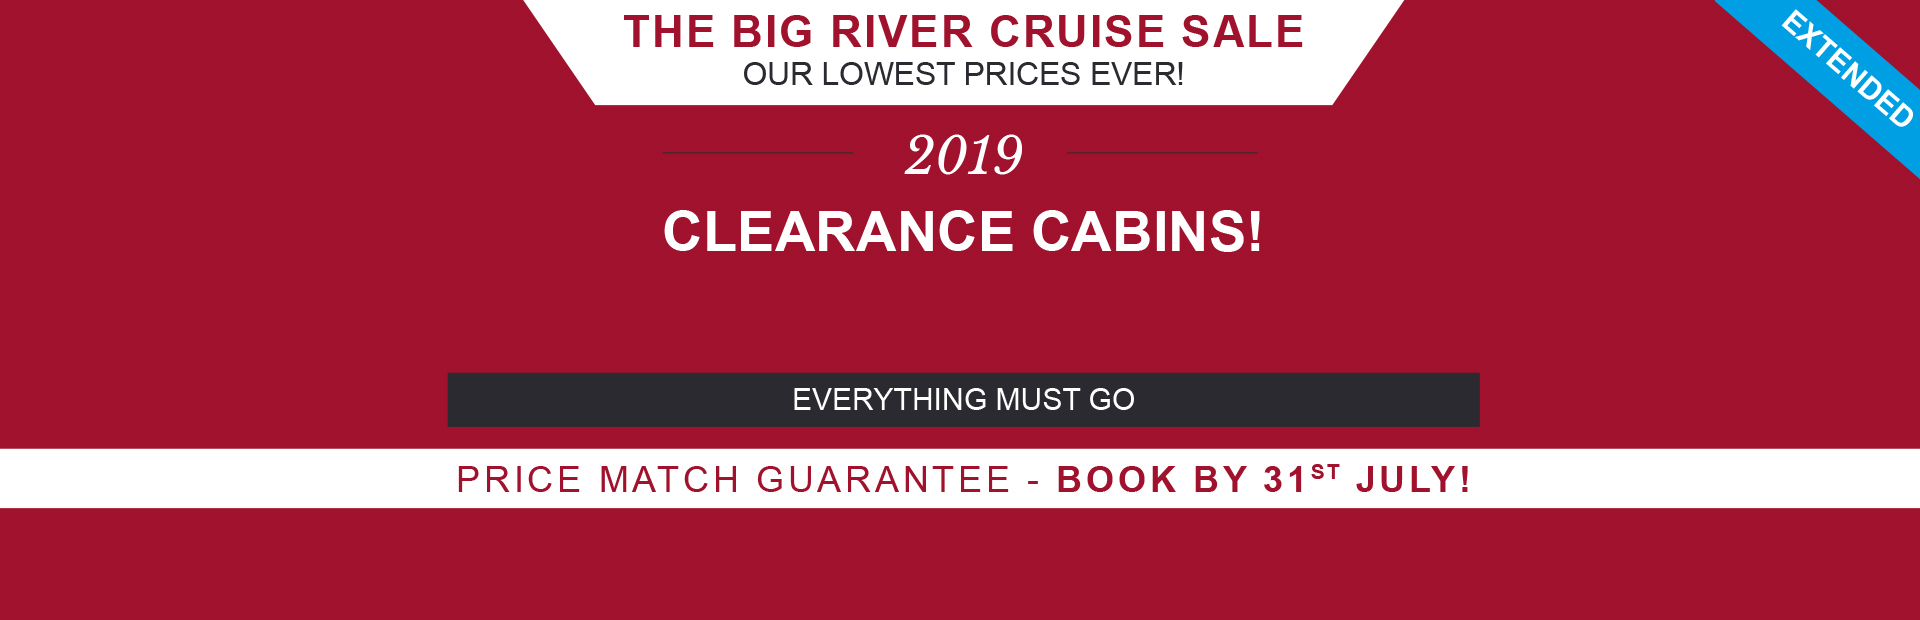 River Cruise Sale - Extended